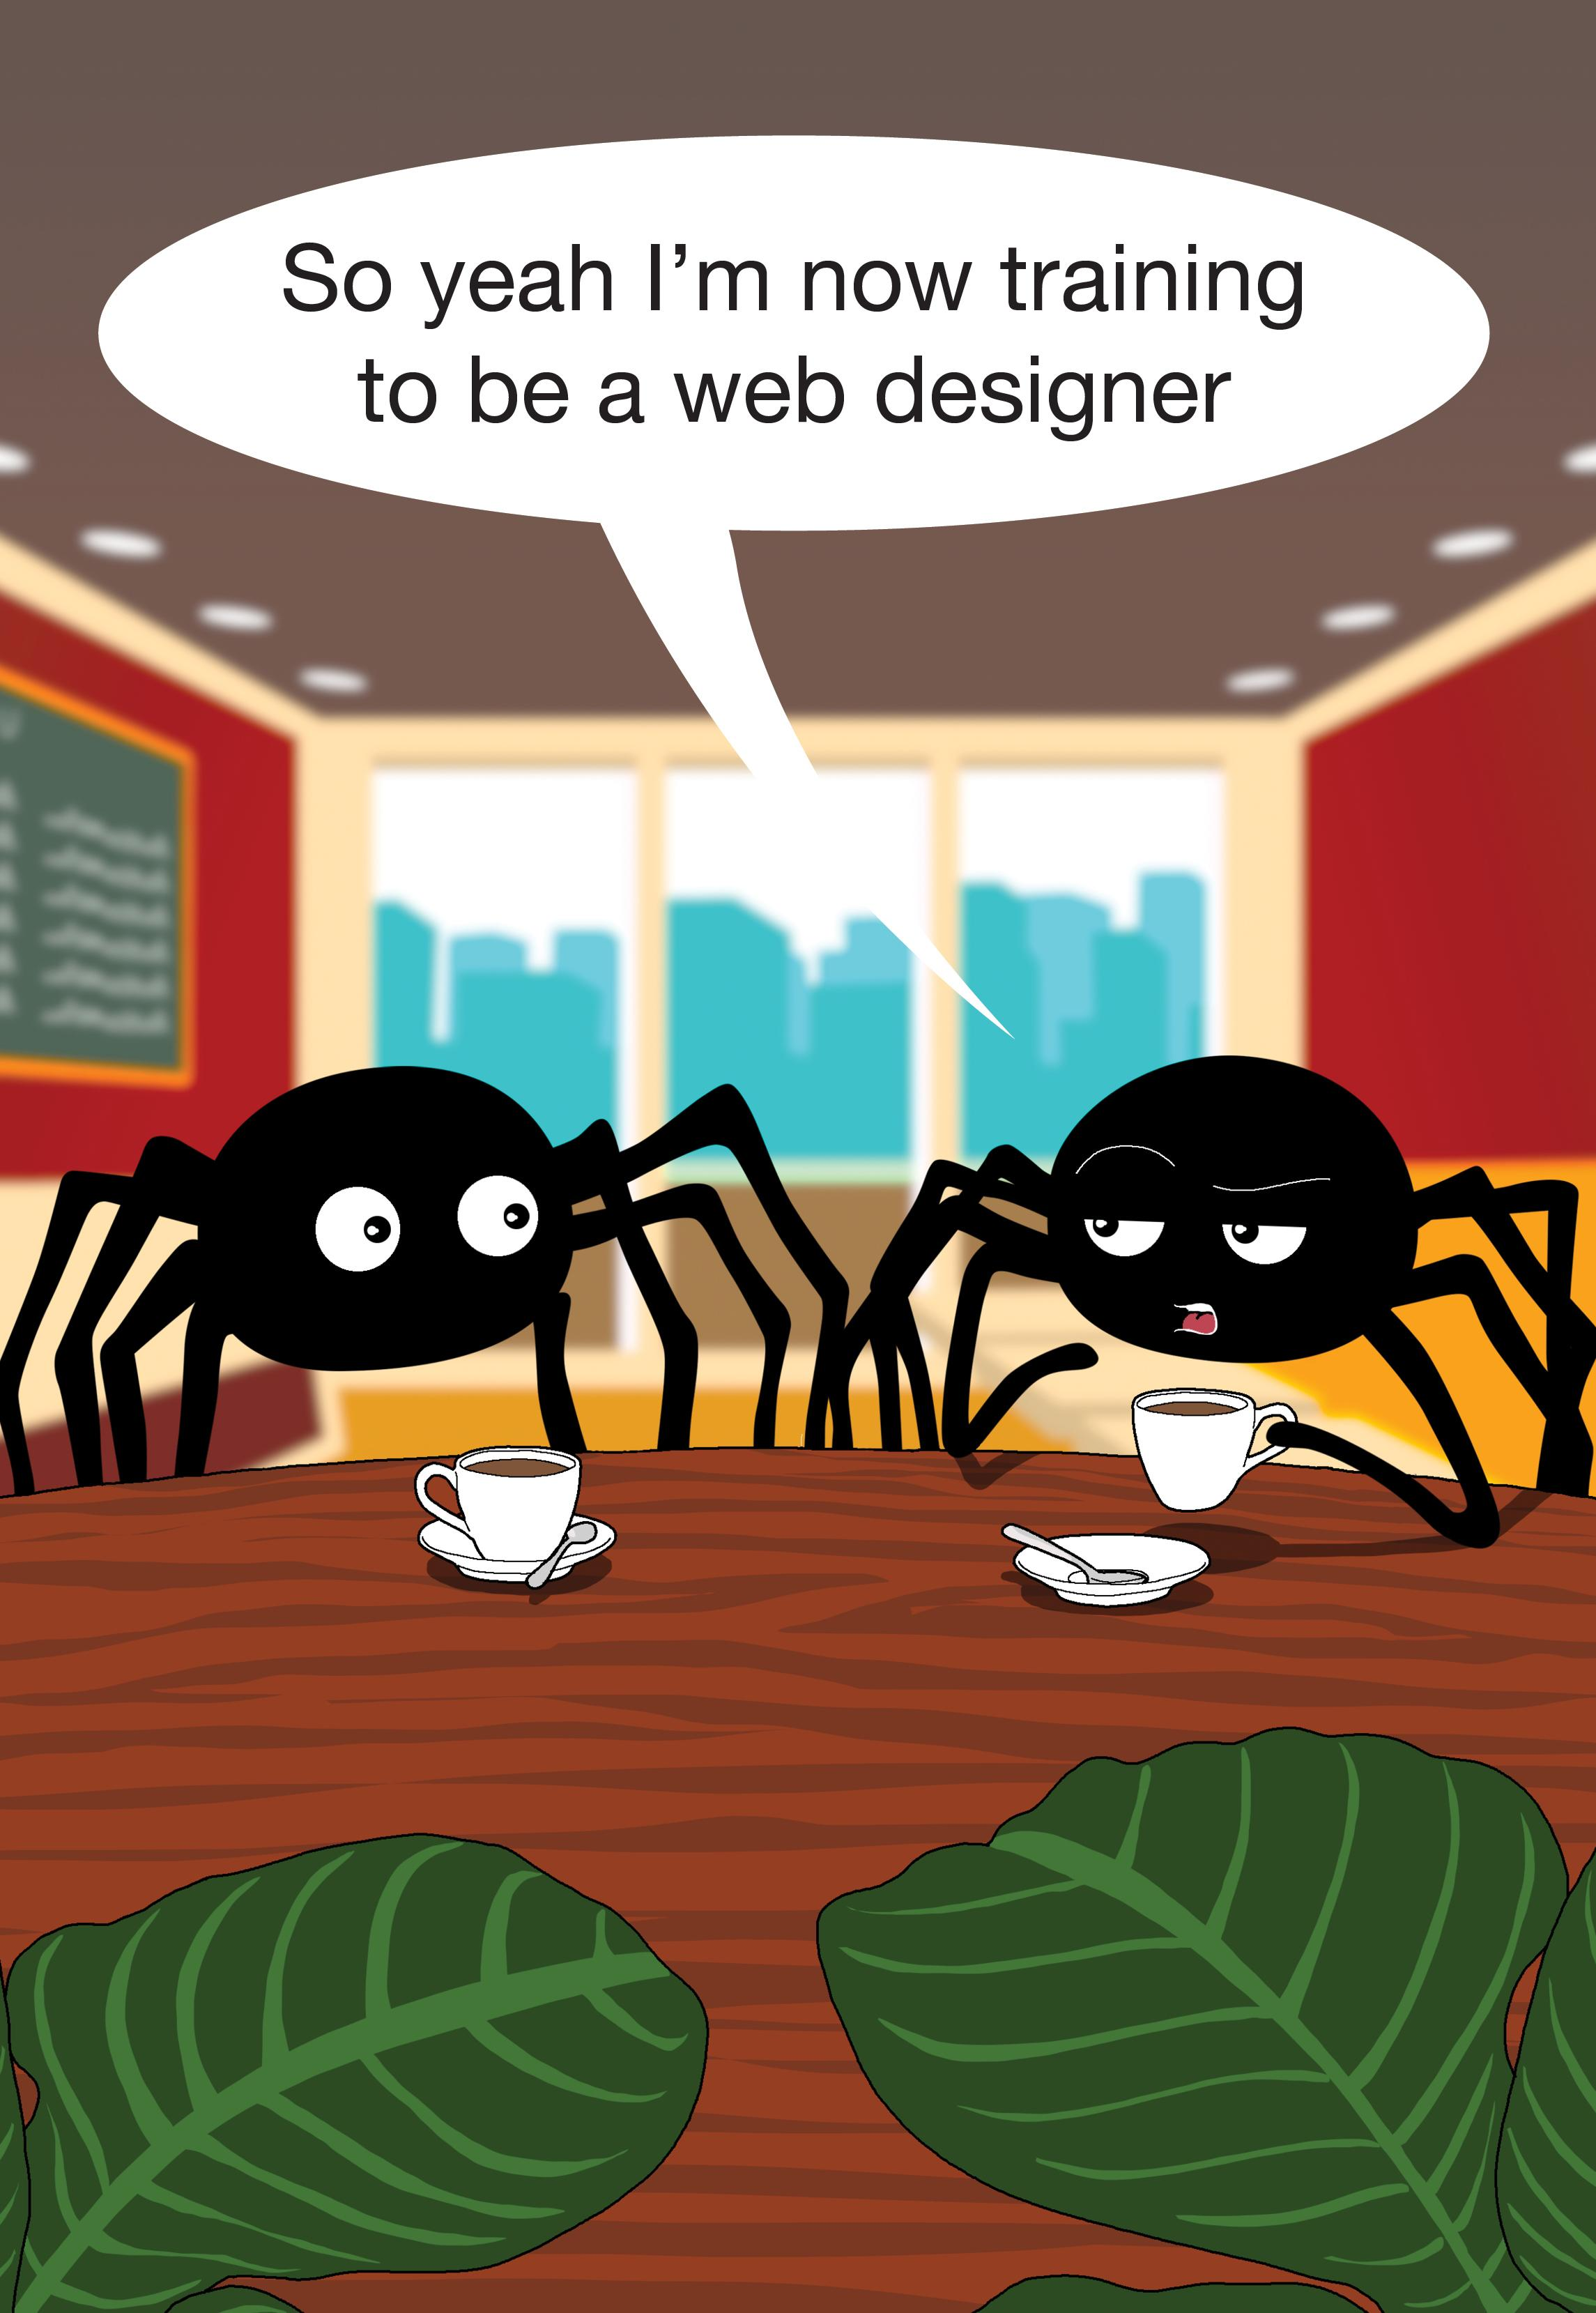 So yeah I'm now training to be a web designer